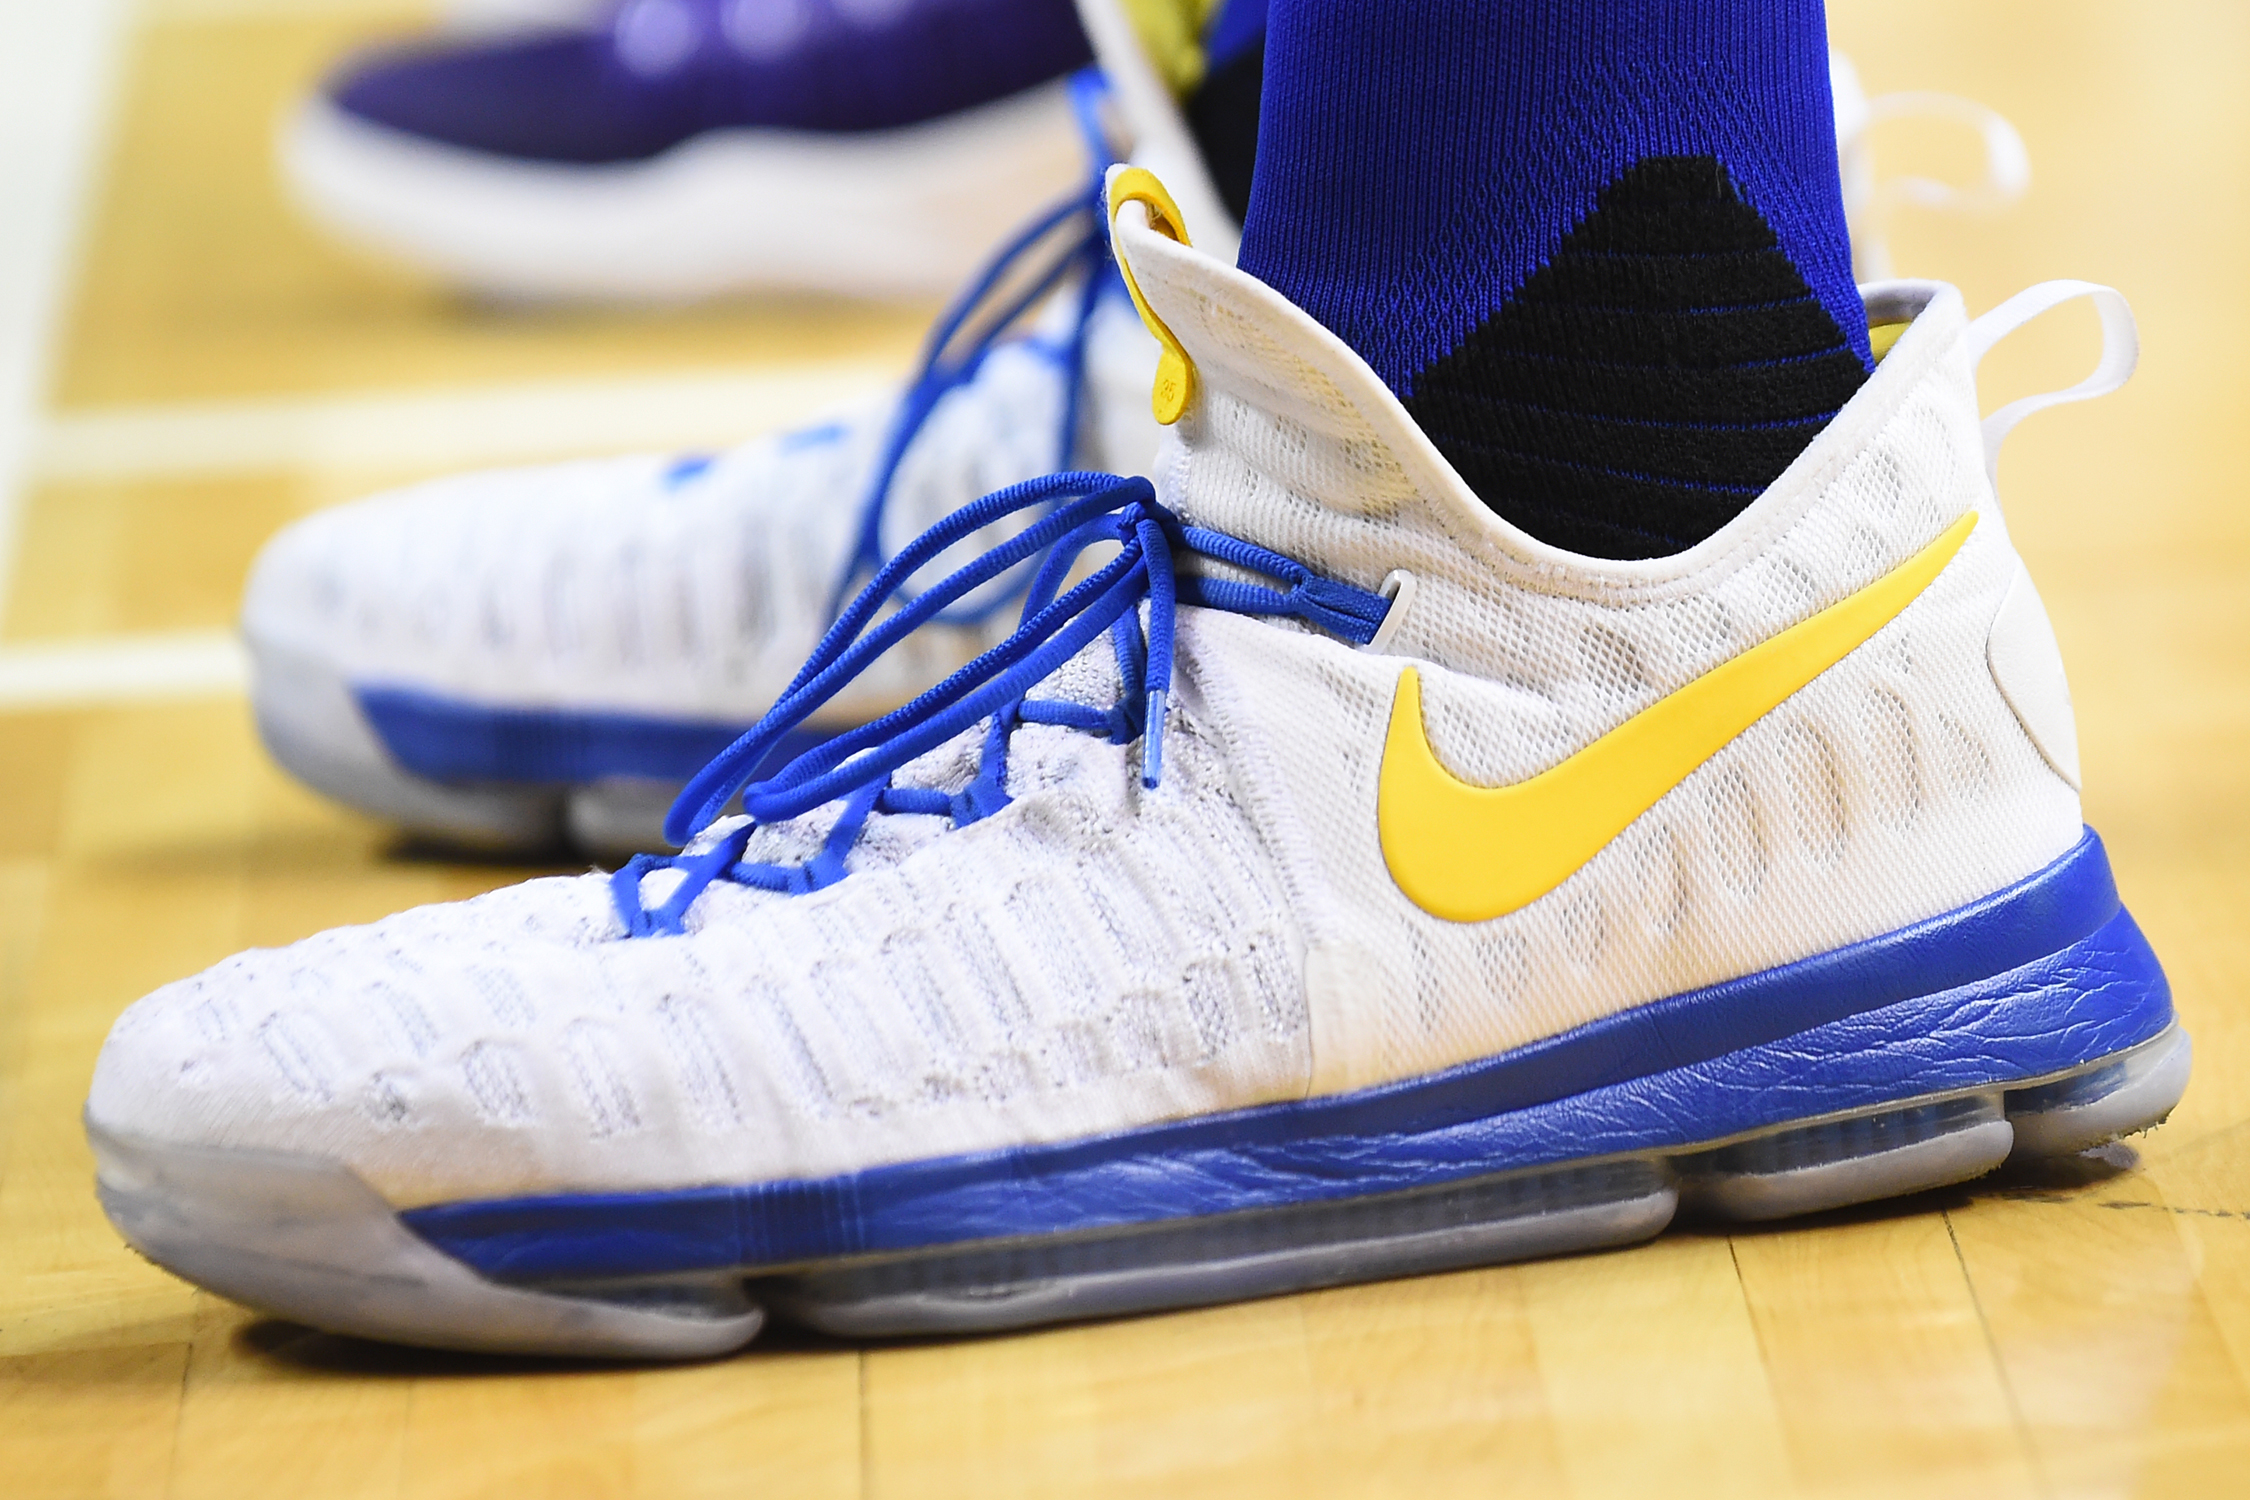 Nike Zoom KD 9 worn by Kevin Durant